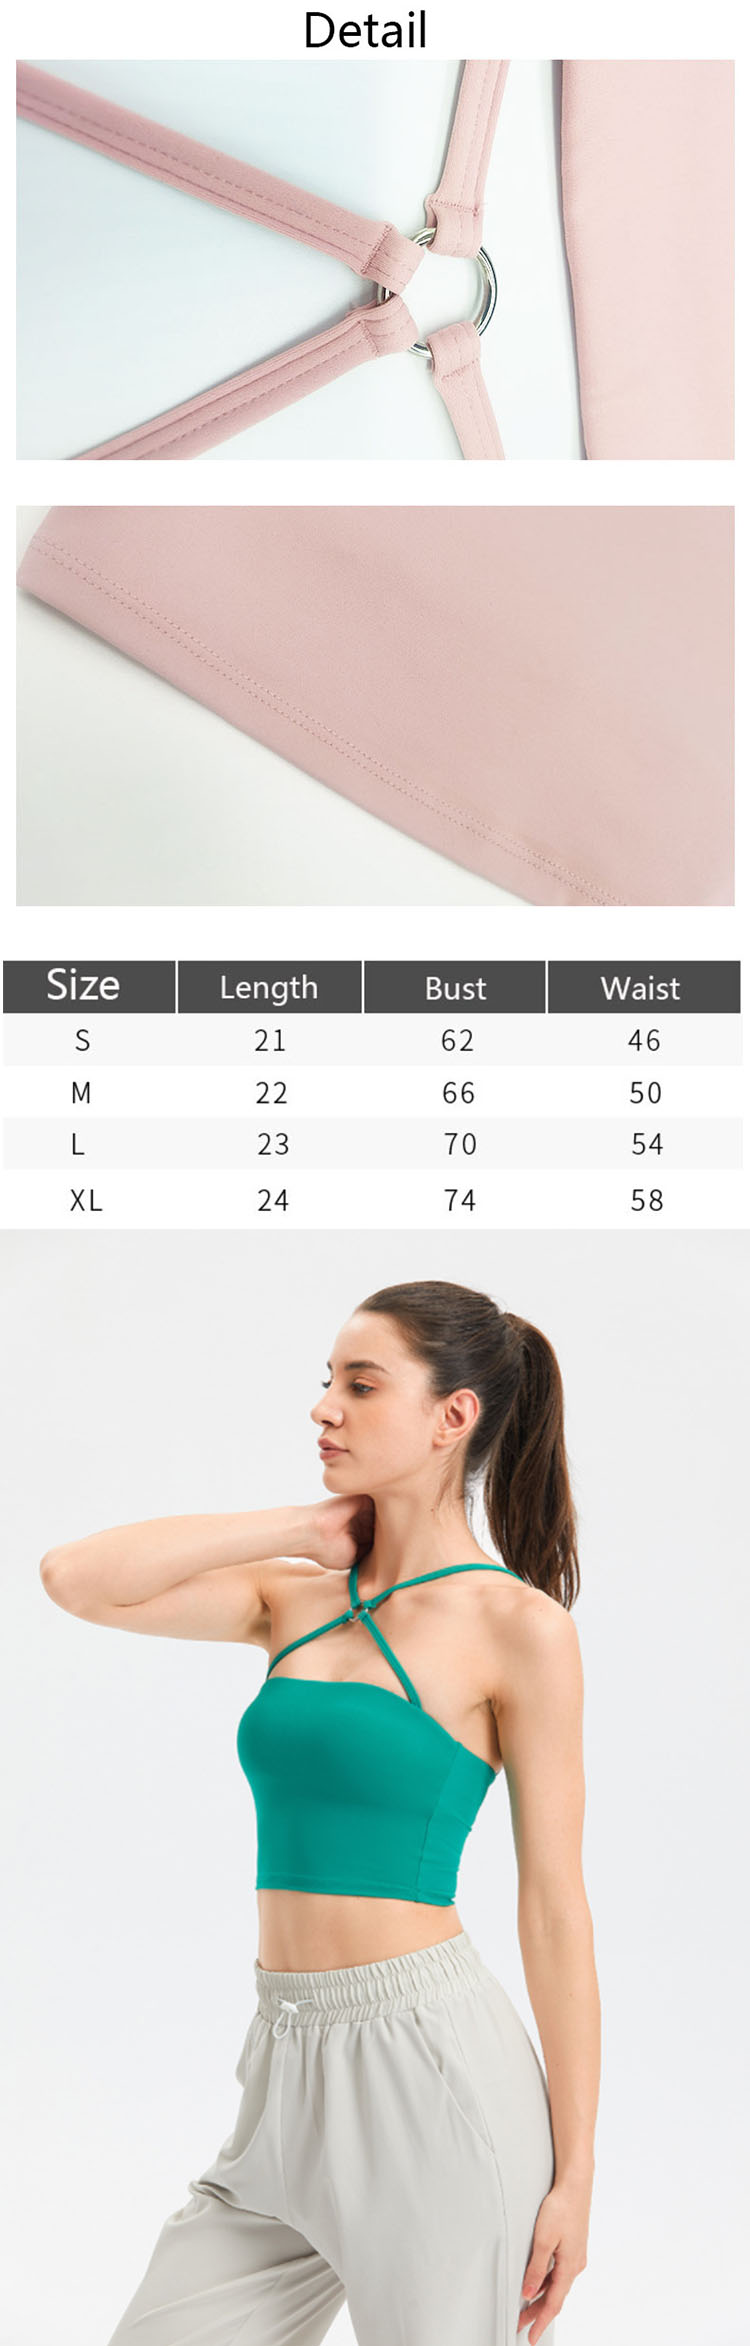 Alloy accessories are used on the chest, and the cross straps on the neckline are not only breathable, but also add sexy charm.